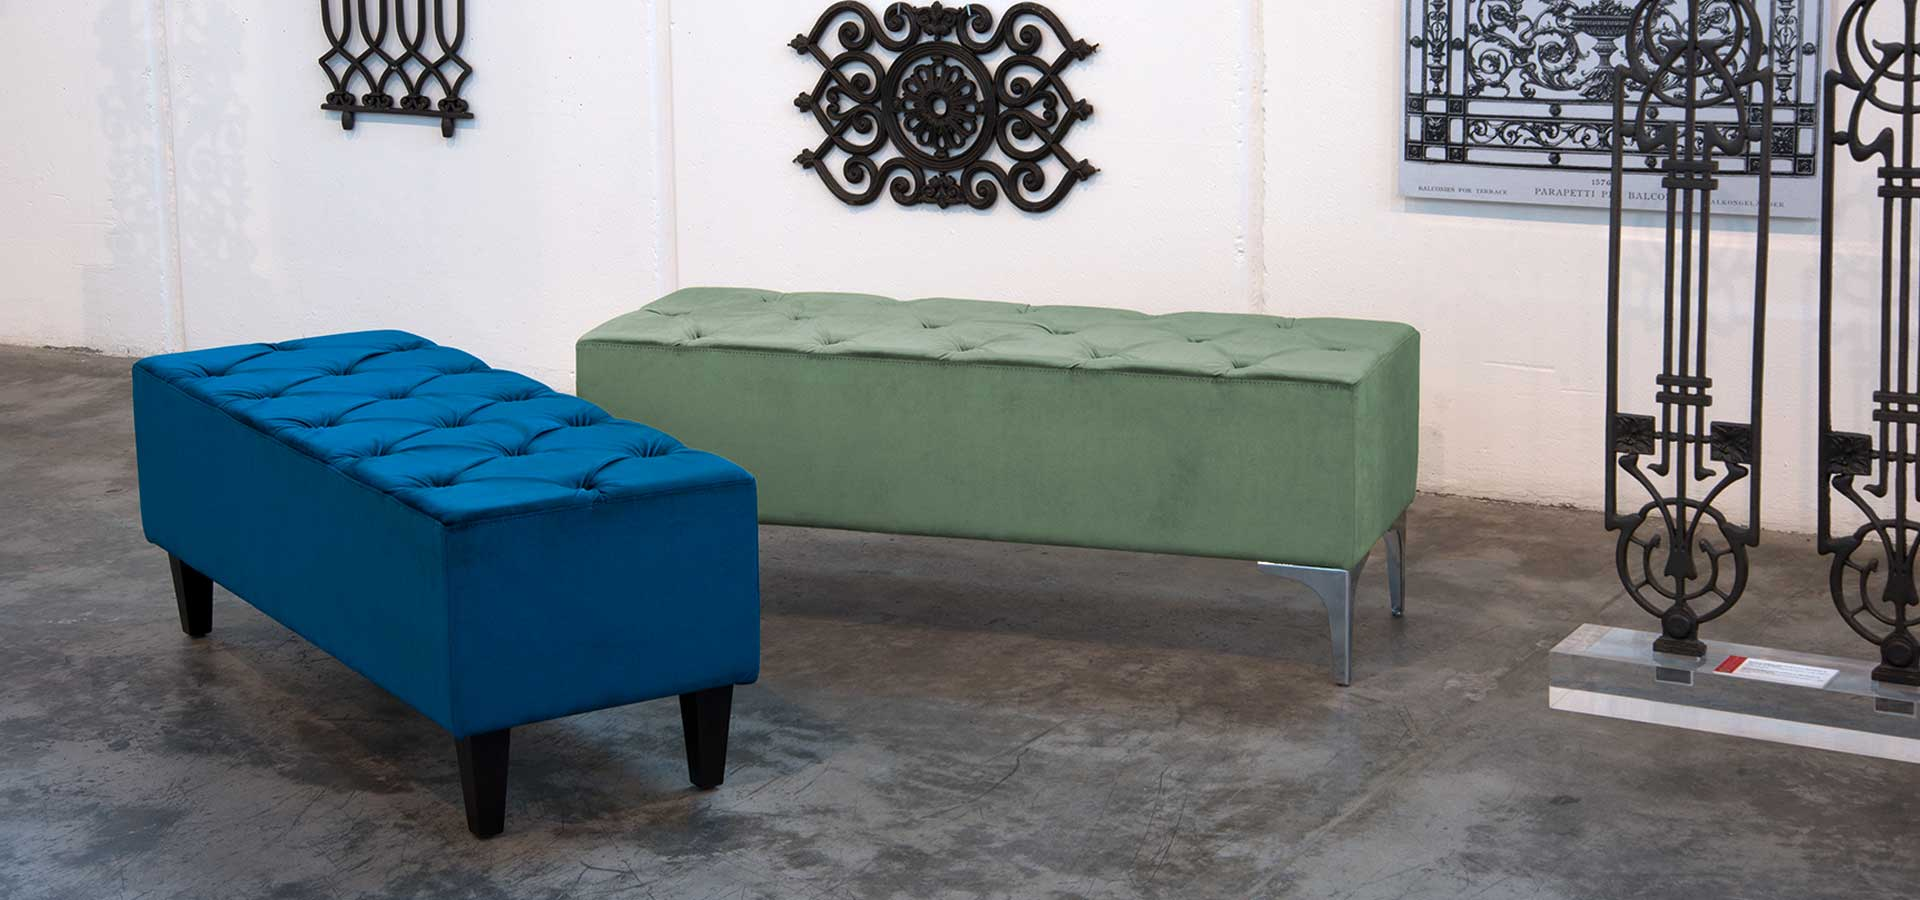 Contract_CollezioneDesignItalianoCollectionItalianDesign_MEGH_5855-verde